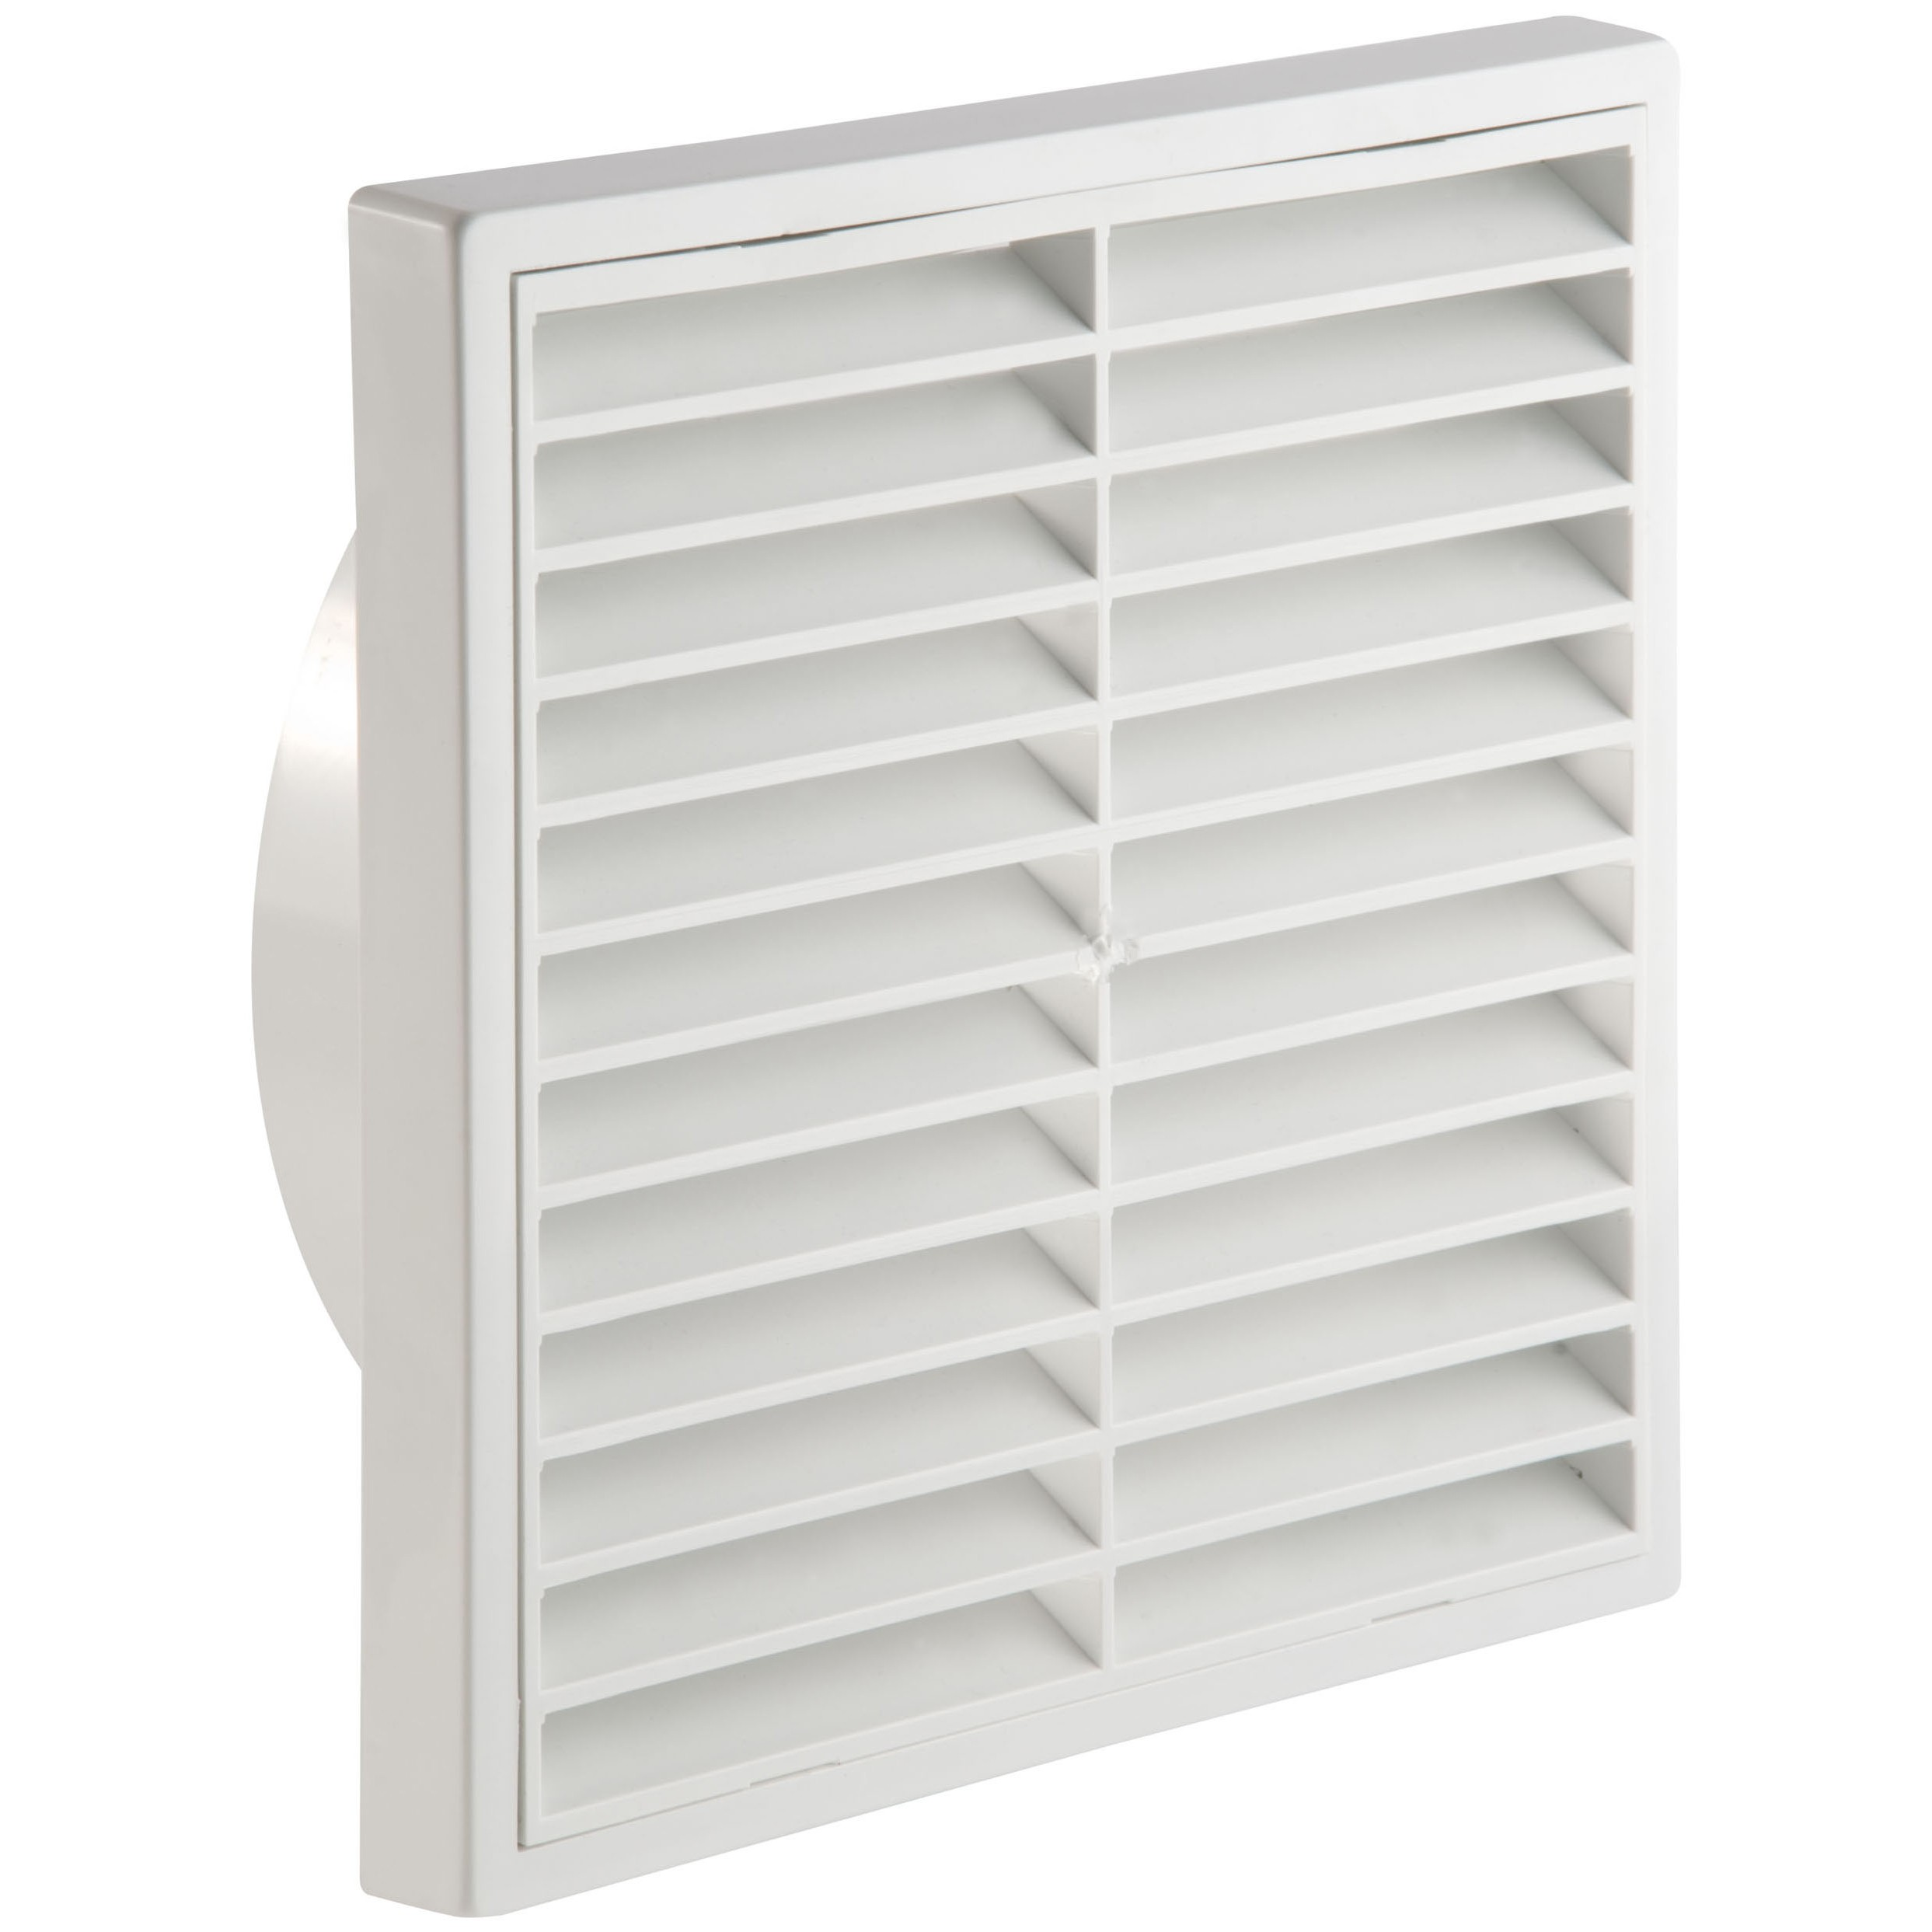 Manrose Round Ducting Pipe Fixed Grille Vent Outlet - White, 150mm